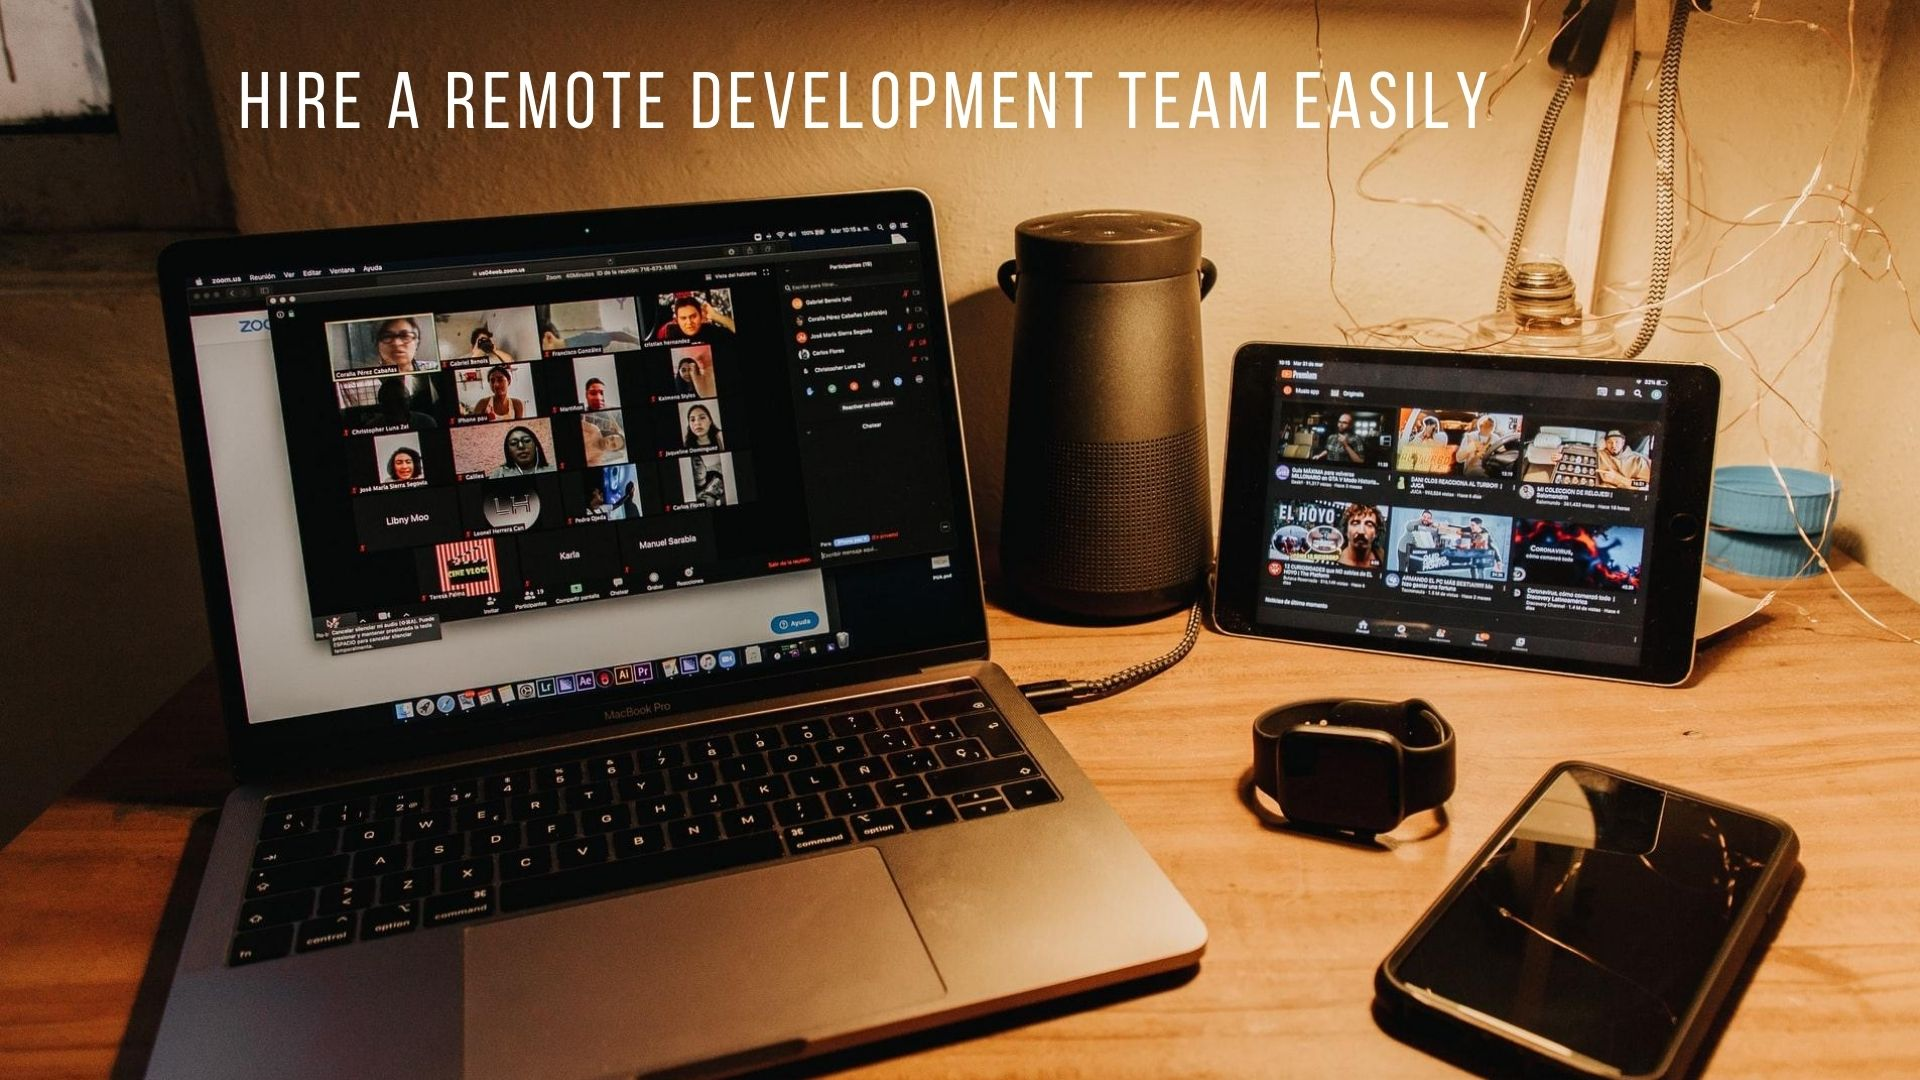 Hireremoteteameasily.